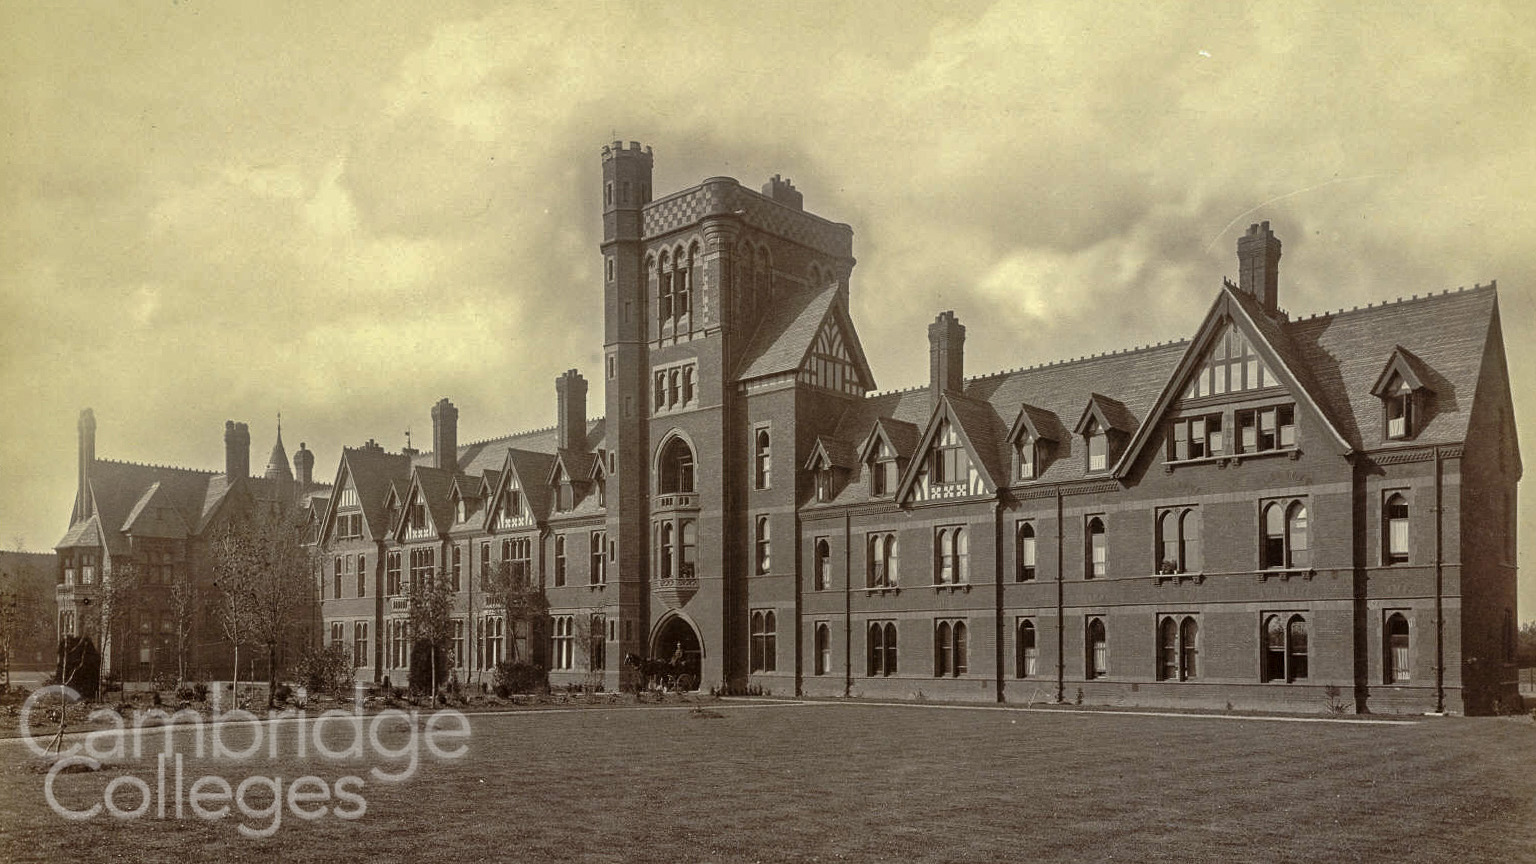 The main entrance to Girton College, with it's parapetted tower, monochrome